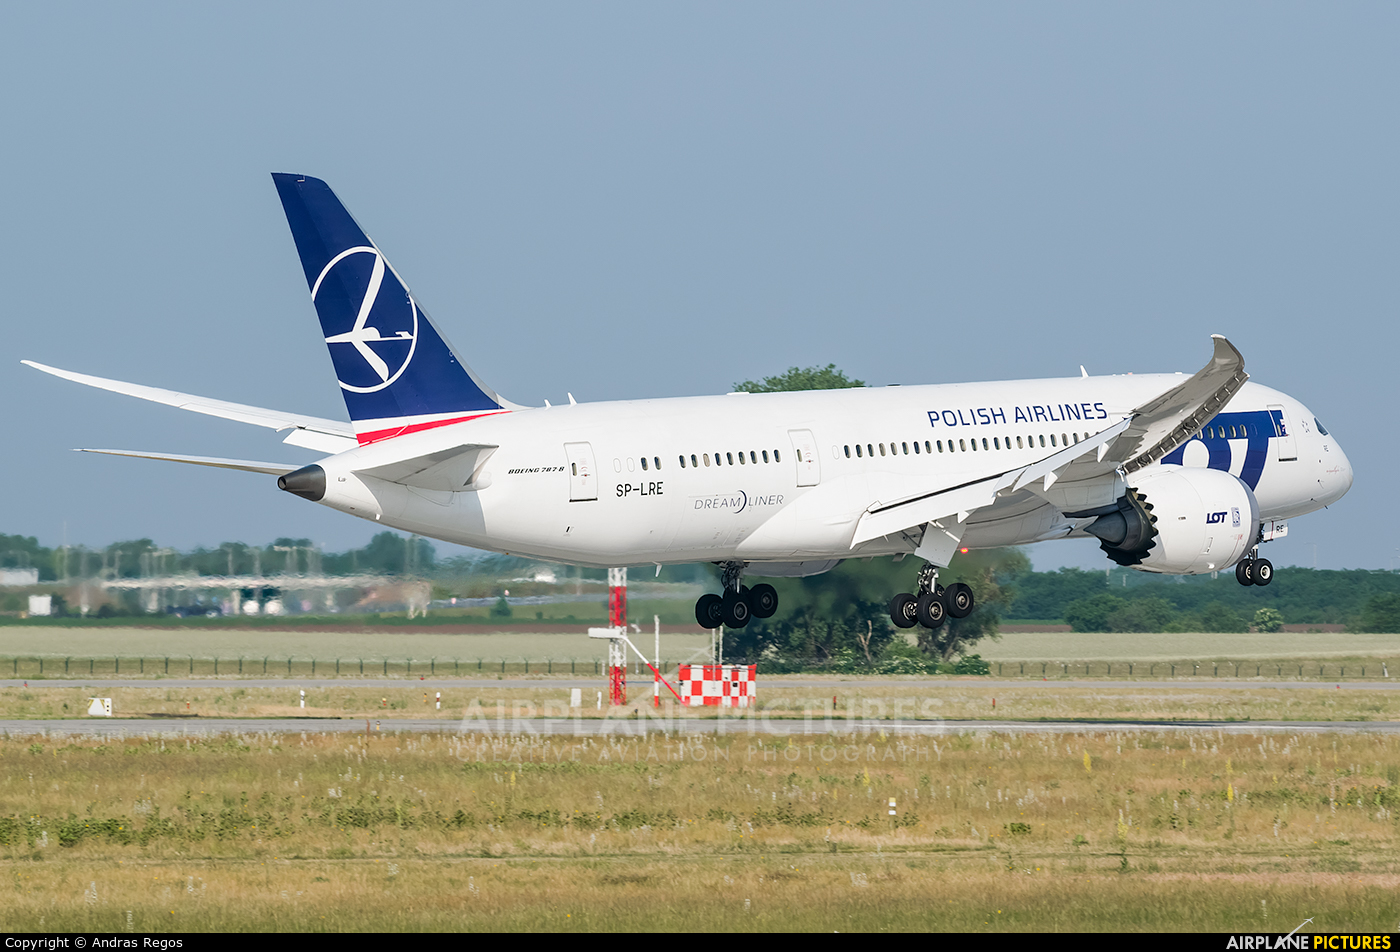 LOT - Polish Airlines SP-LRE aircraft at Budapest Ferenc Liszt International Airport